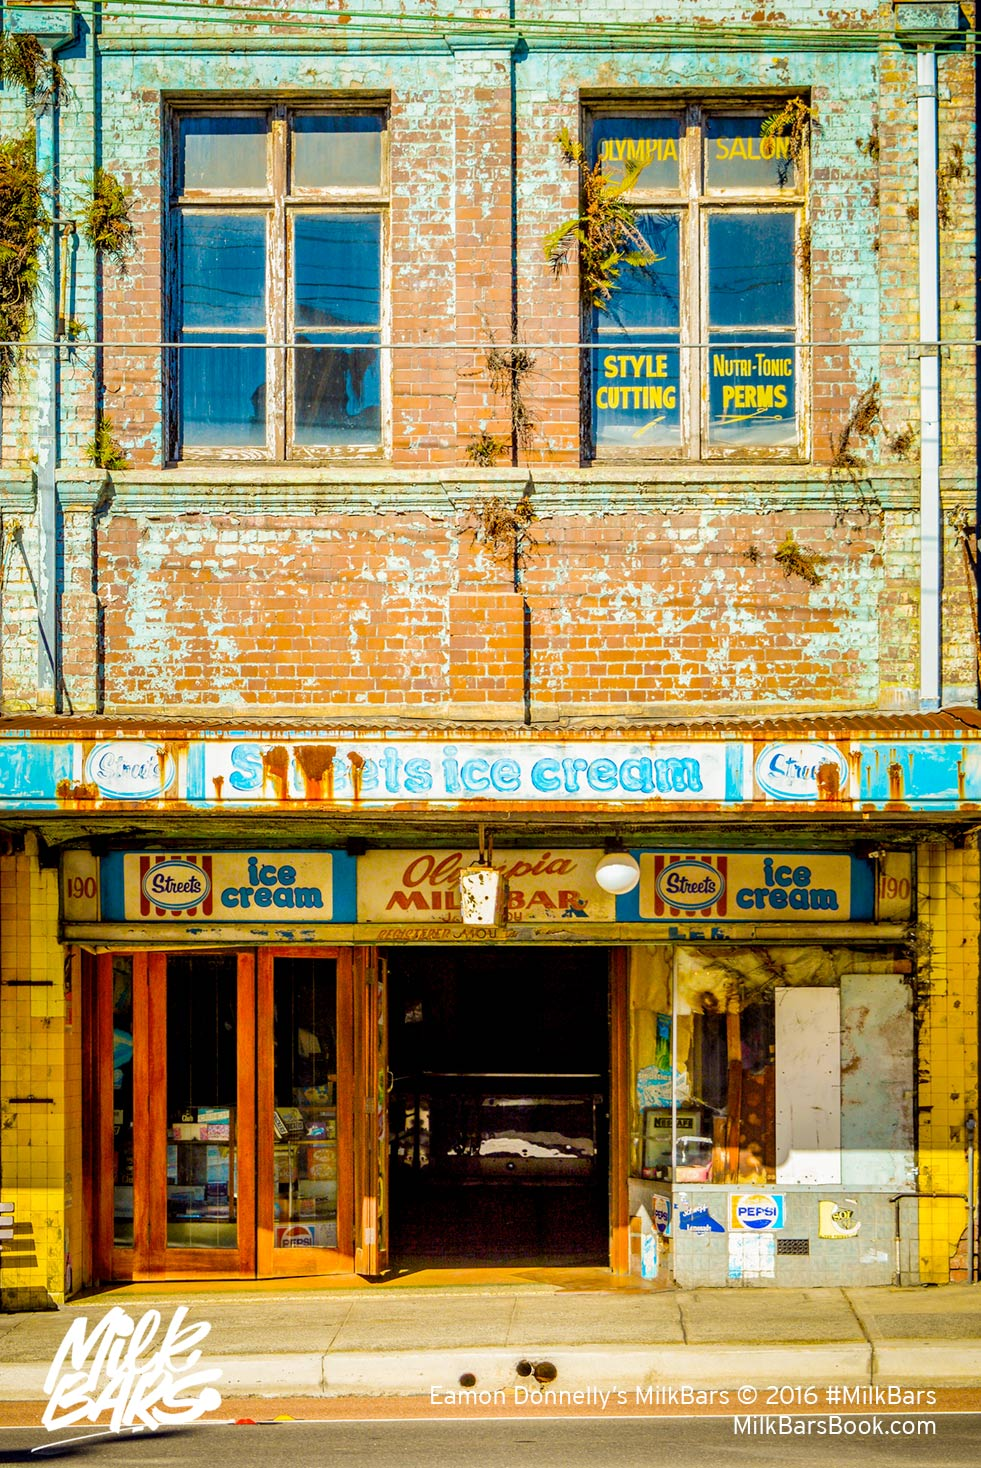 Olympia-Milk-Bar-7-Sydney-Stanmore-Parramatta-Road-Eamon-Donnelly's-Milk-Bars-Book-Project-(c)-2001-2016.jpg